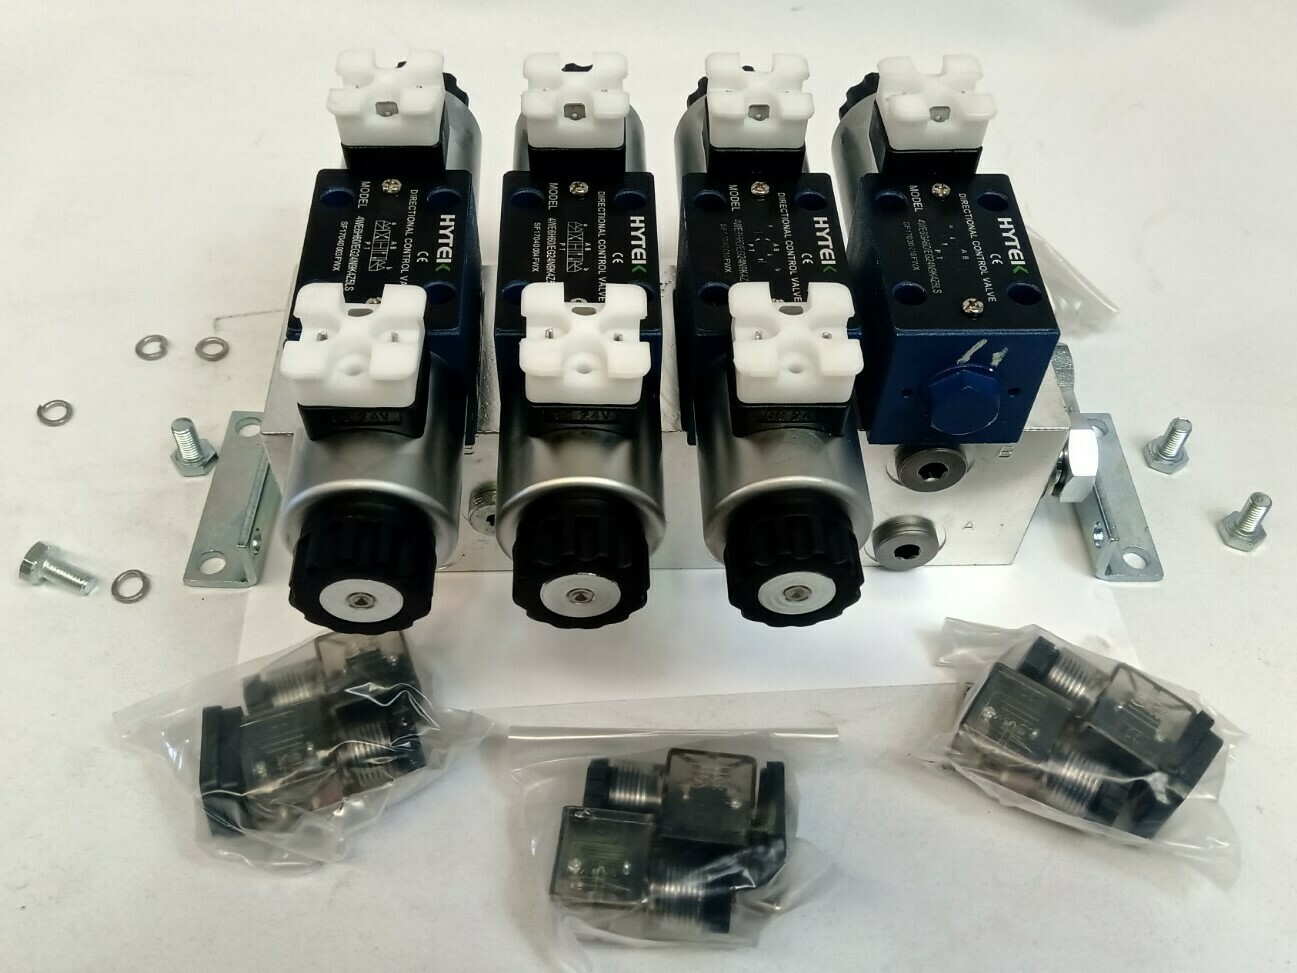 Electrically Controlled Cetop 3 Hydraulic Oil Control Manifold 50 LPM CHERRY PICKER / TRUCK